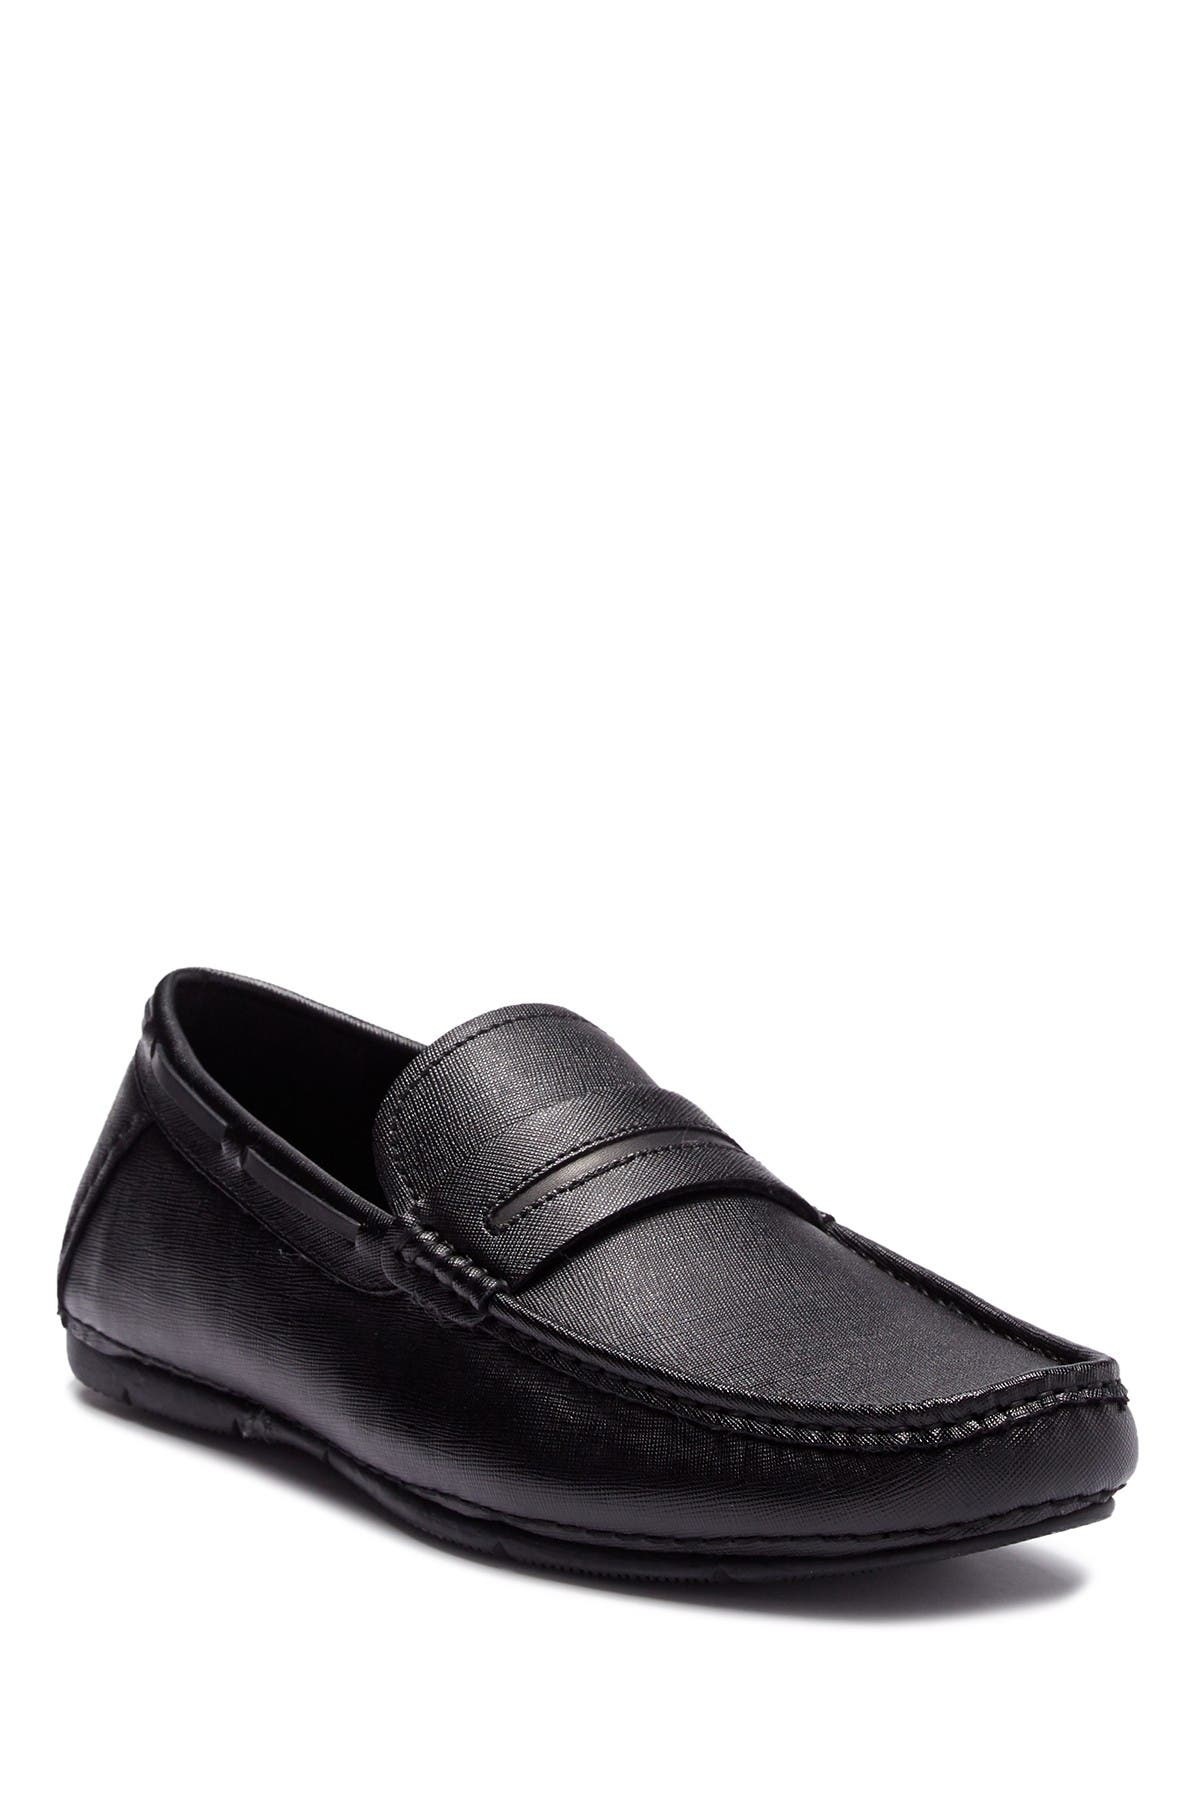 Image of Kenneth Cole Reaction Penny Loafer